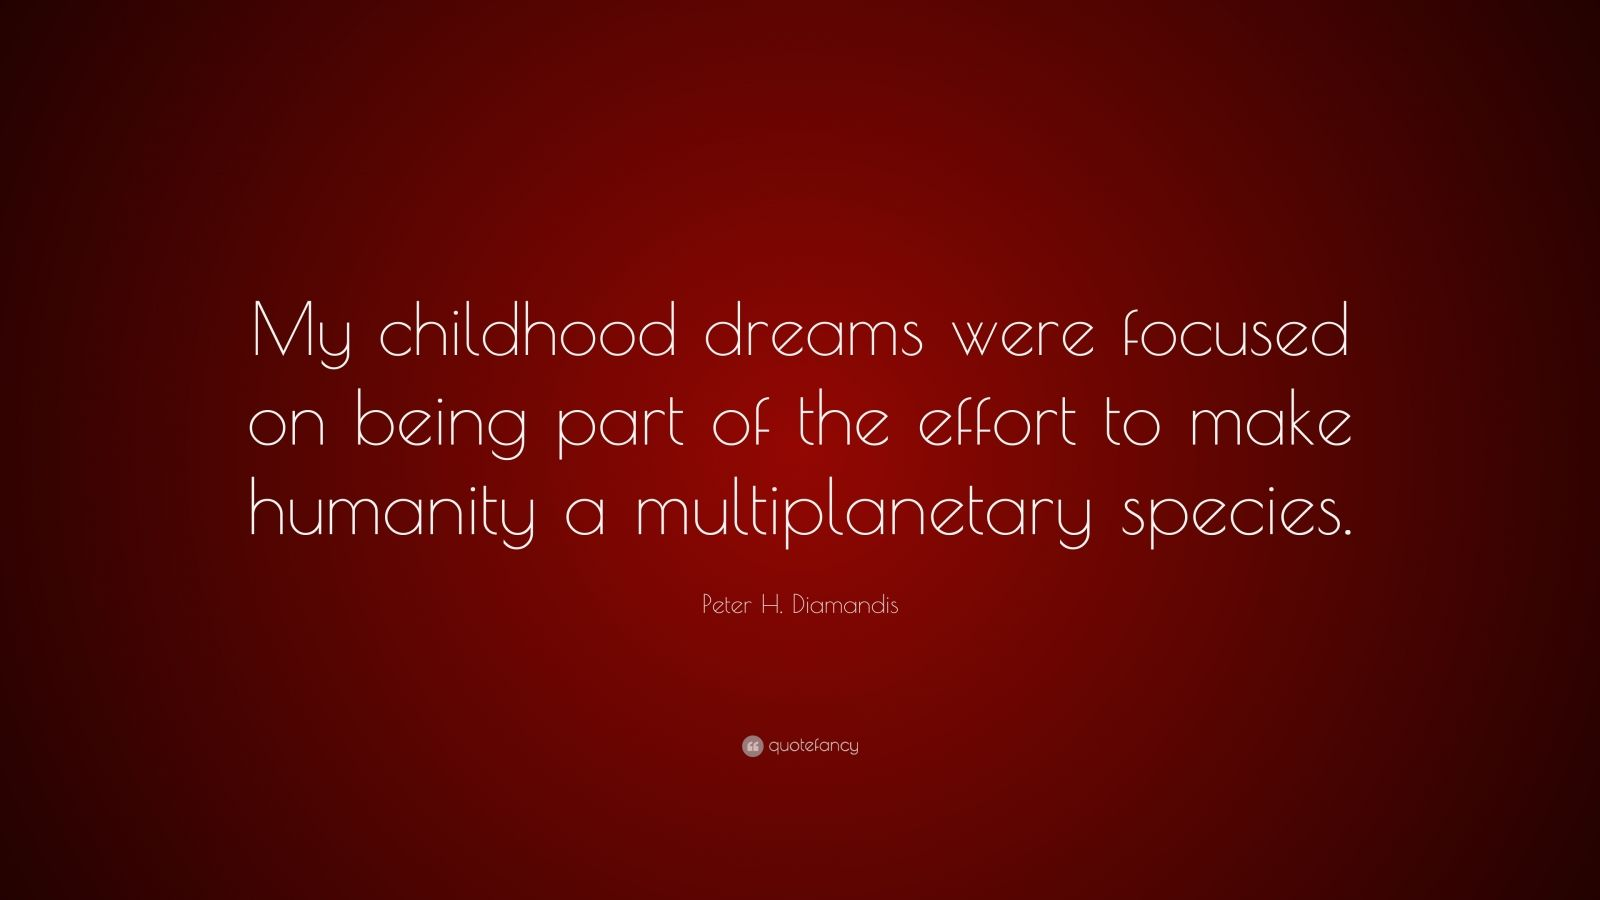 """Peter H. Diamandis Quote: """"My childhood dreams were focused on being part of the effort to make humanity a multiplanetary species."""""""